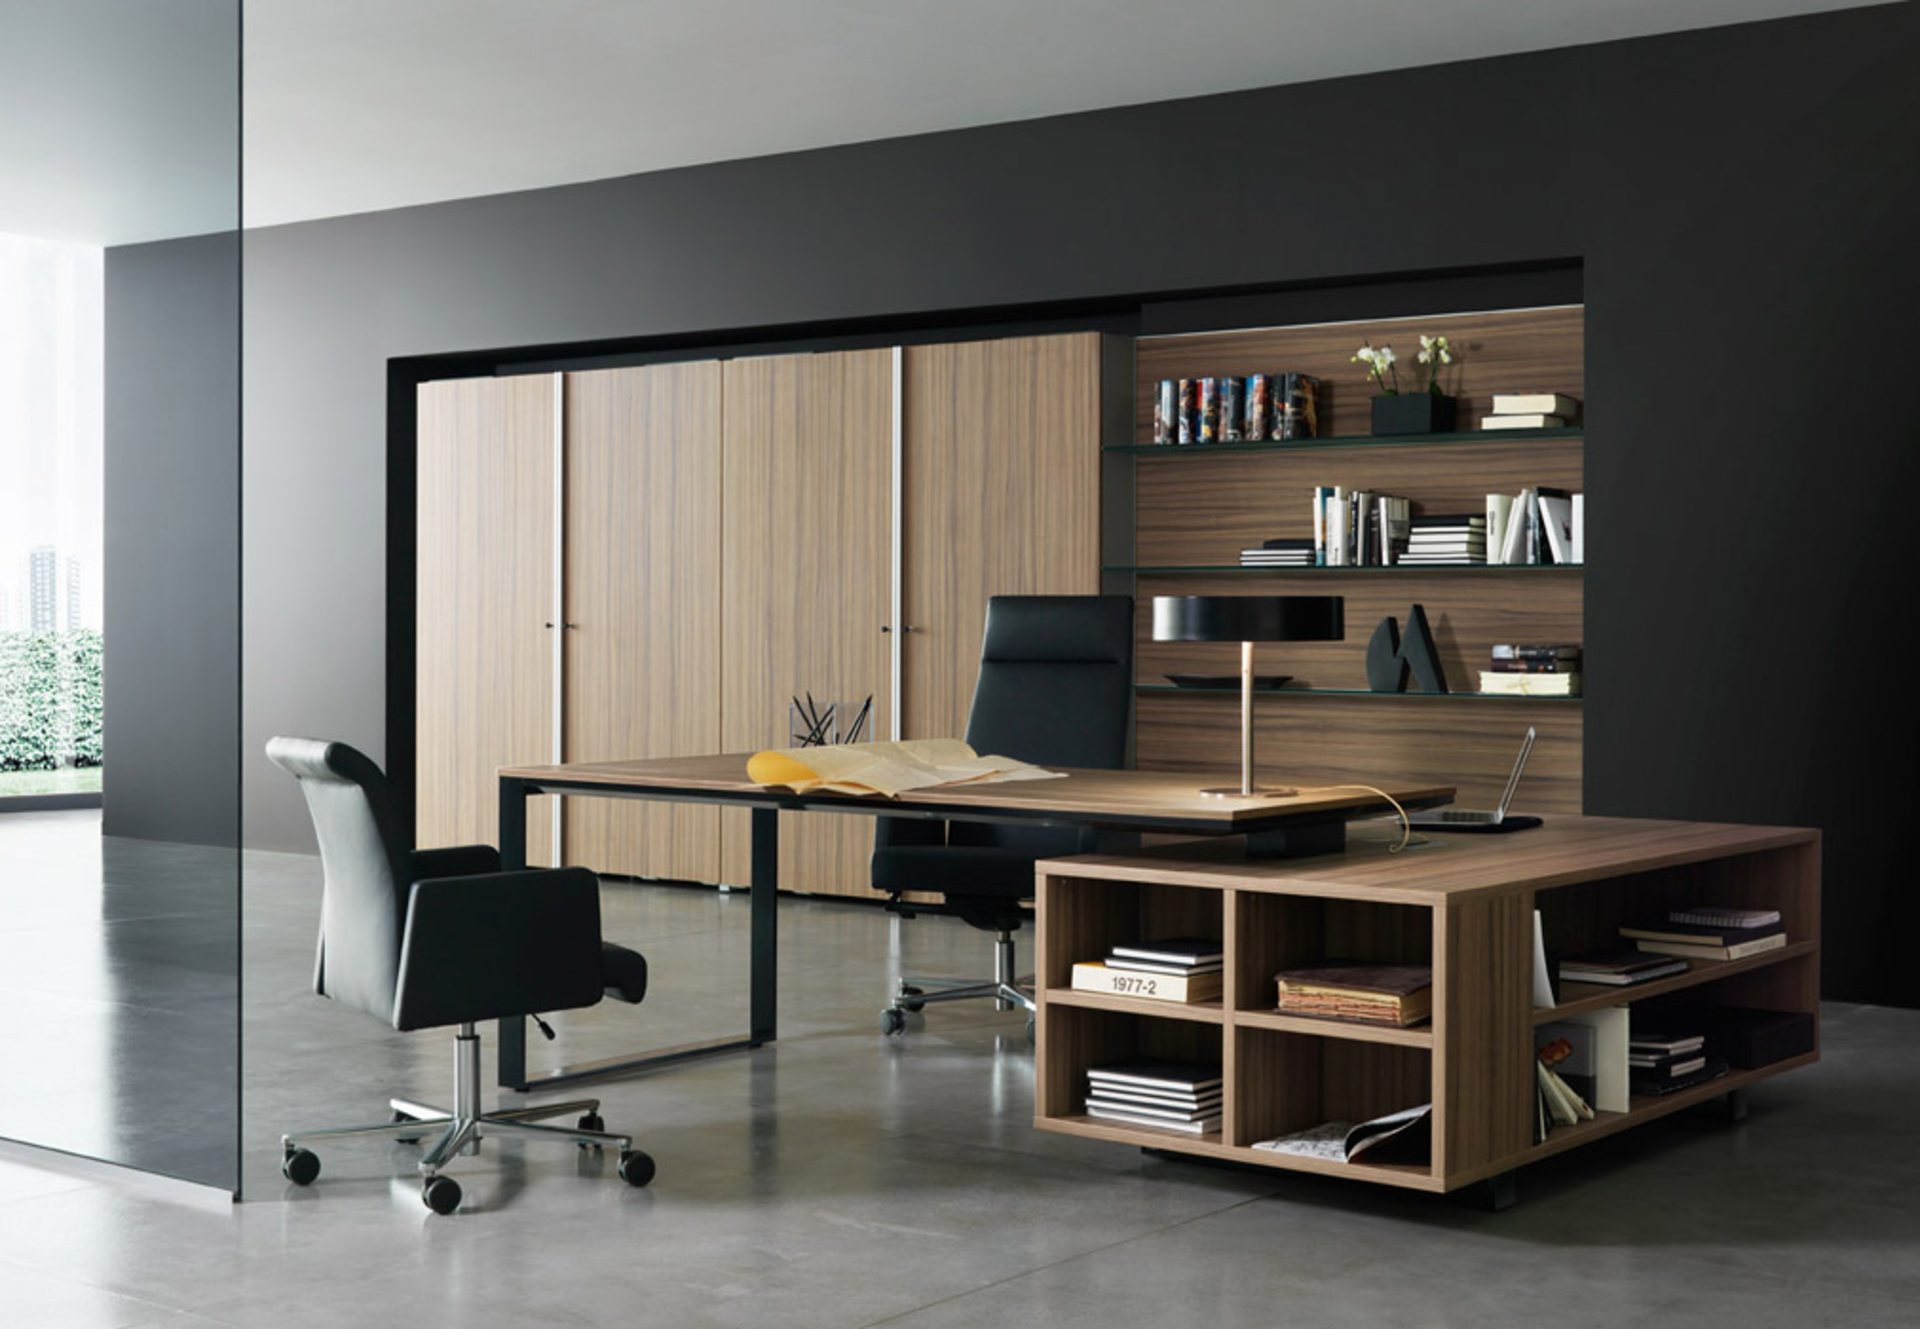 The Perfect Workplace: Tips For Office Interior Design